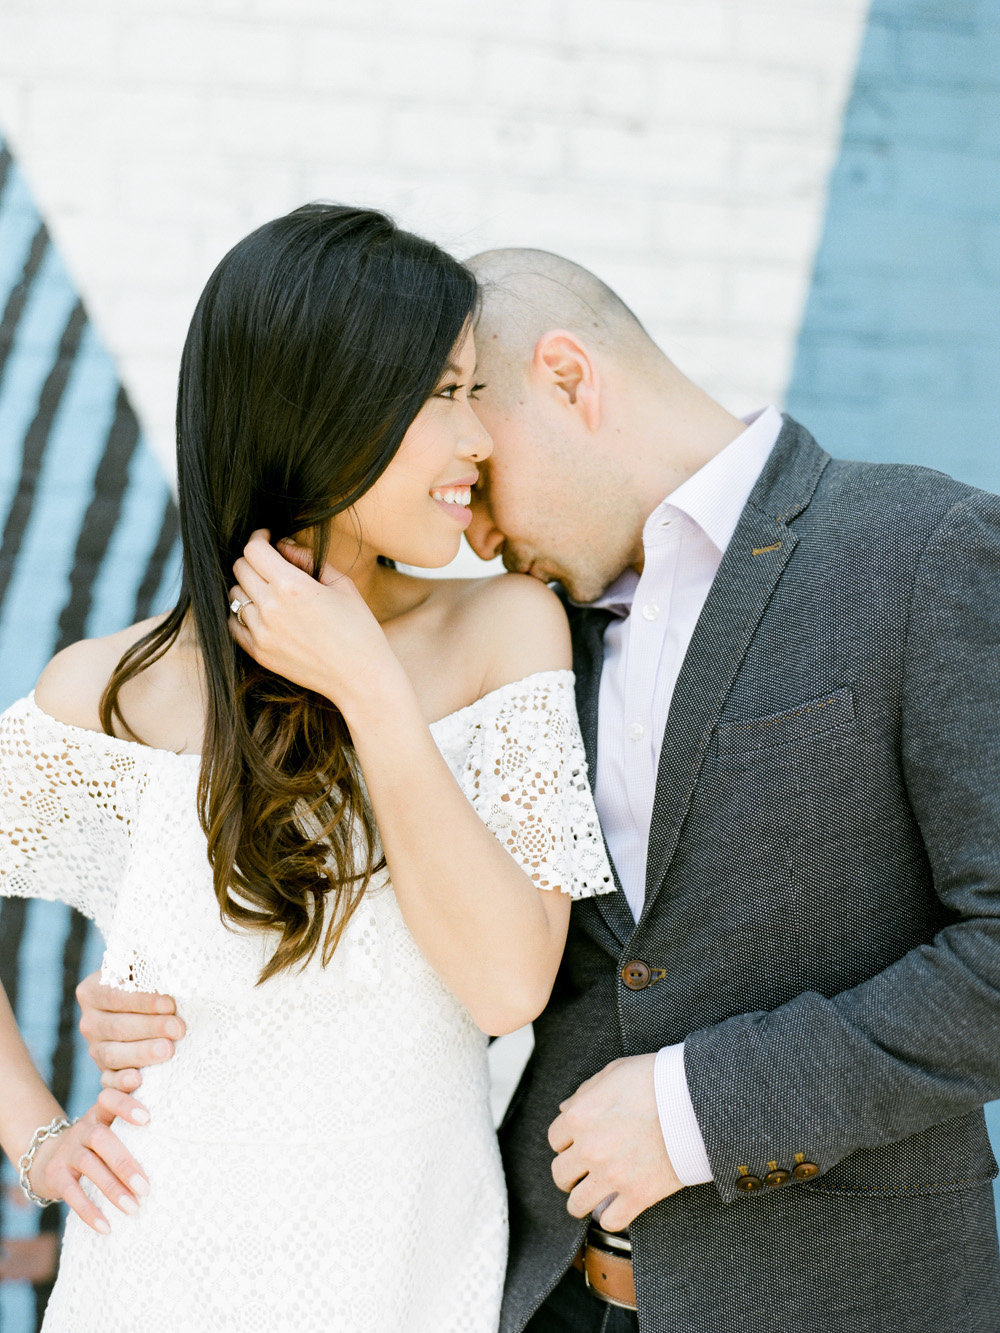 mary-dougherty-engagement-wedding-photographer-nyc-brooklyn-manhattan01